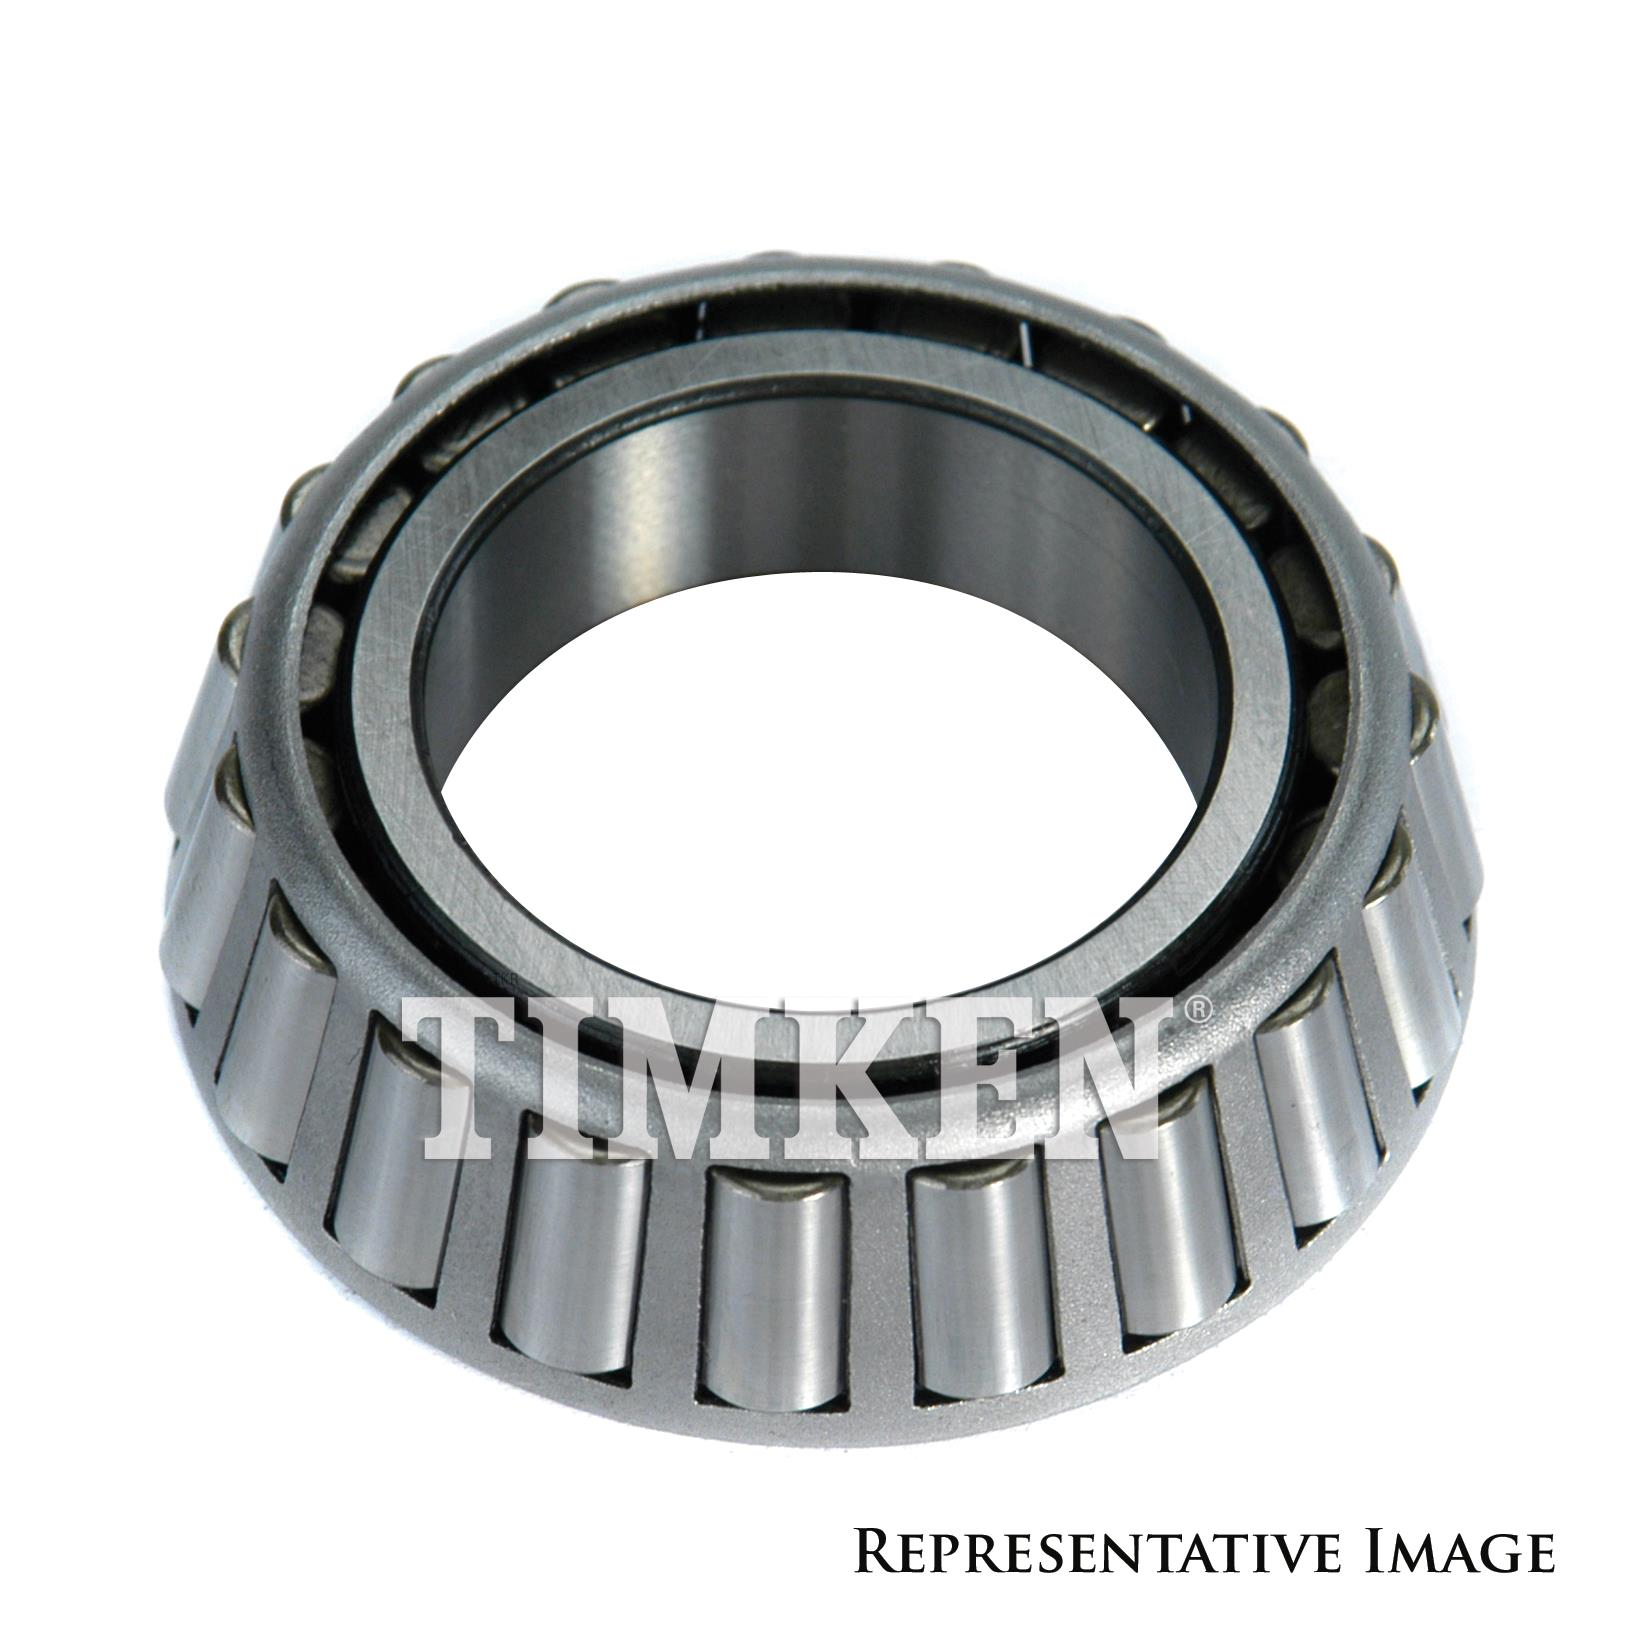 Steering Knuckle Bearing